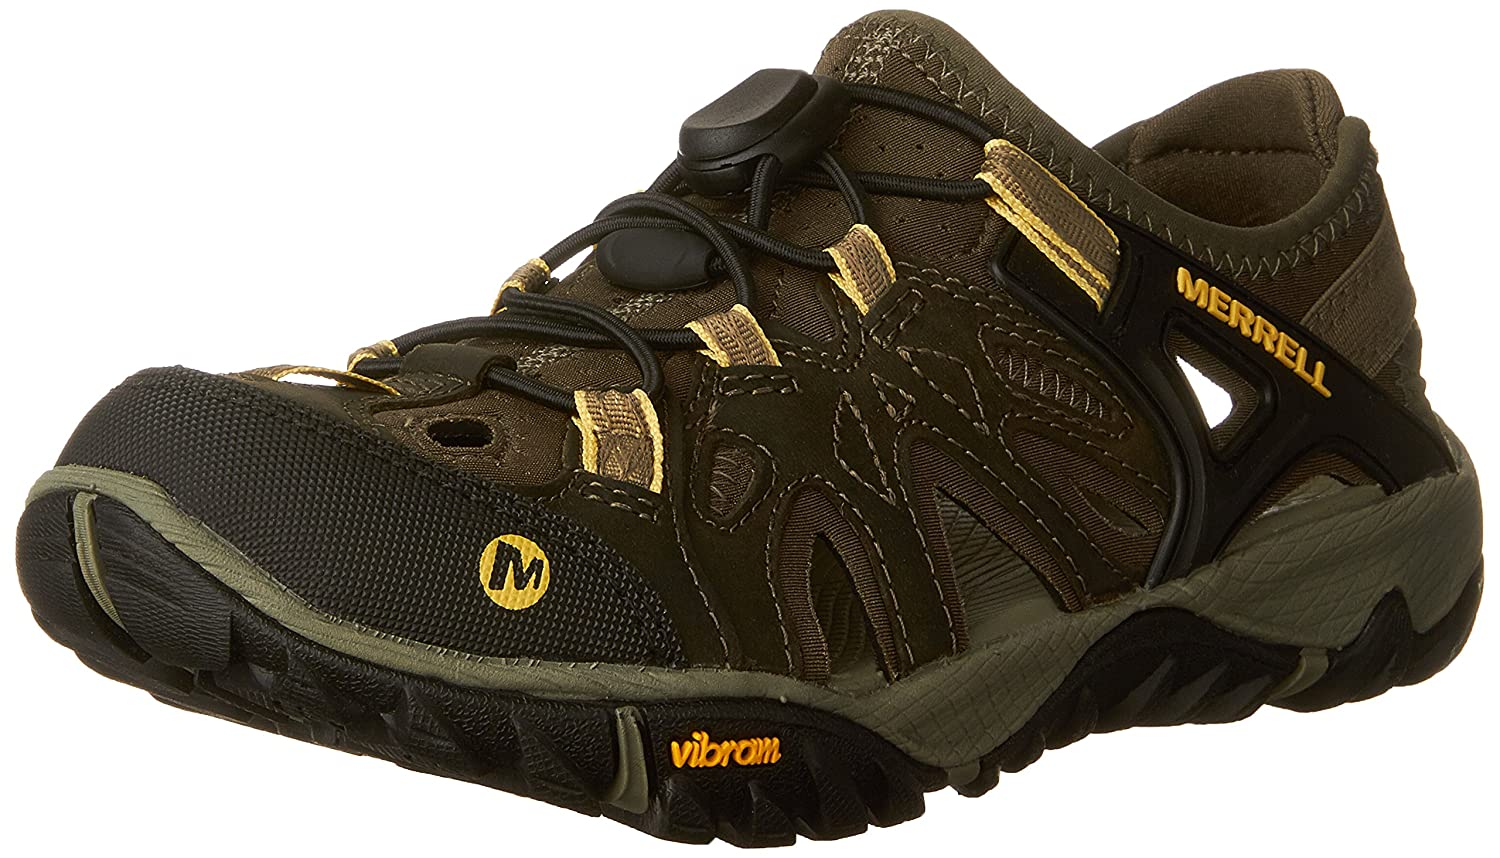 Merrell Women's All Out Blaze Sieve Water Shoe B01N2JHYH9 10 B(M) US|Olive Night